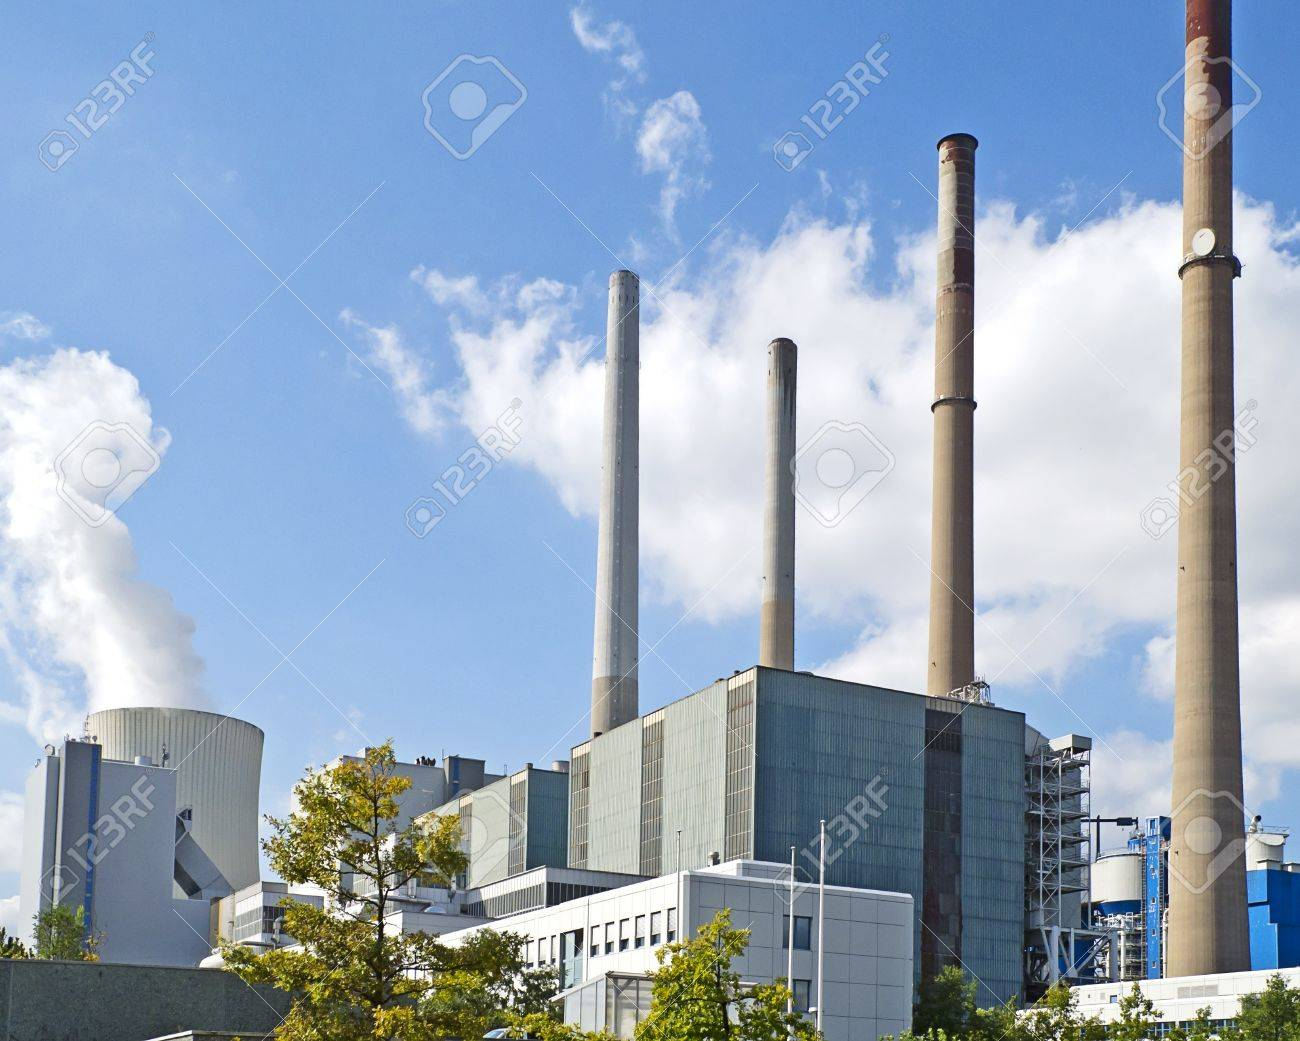 Coal-burning power plant  in Grosskrotzenburg, Hesse, Germany. Operator: EON Group. Image taken on September 15, 2011. Stock Photo - 11200727